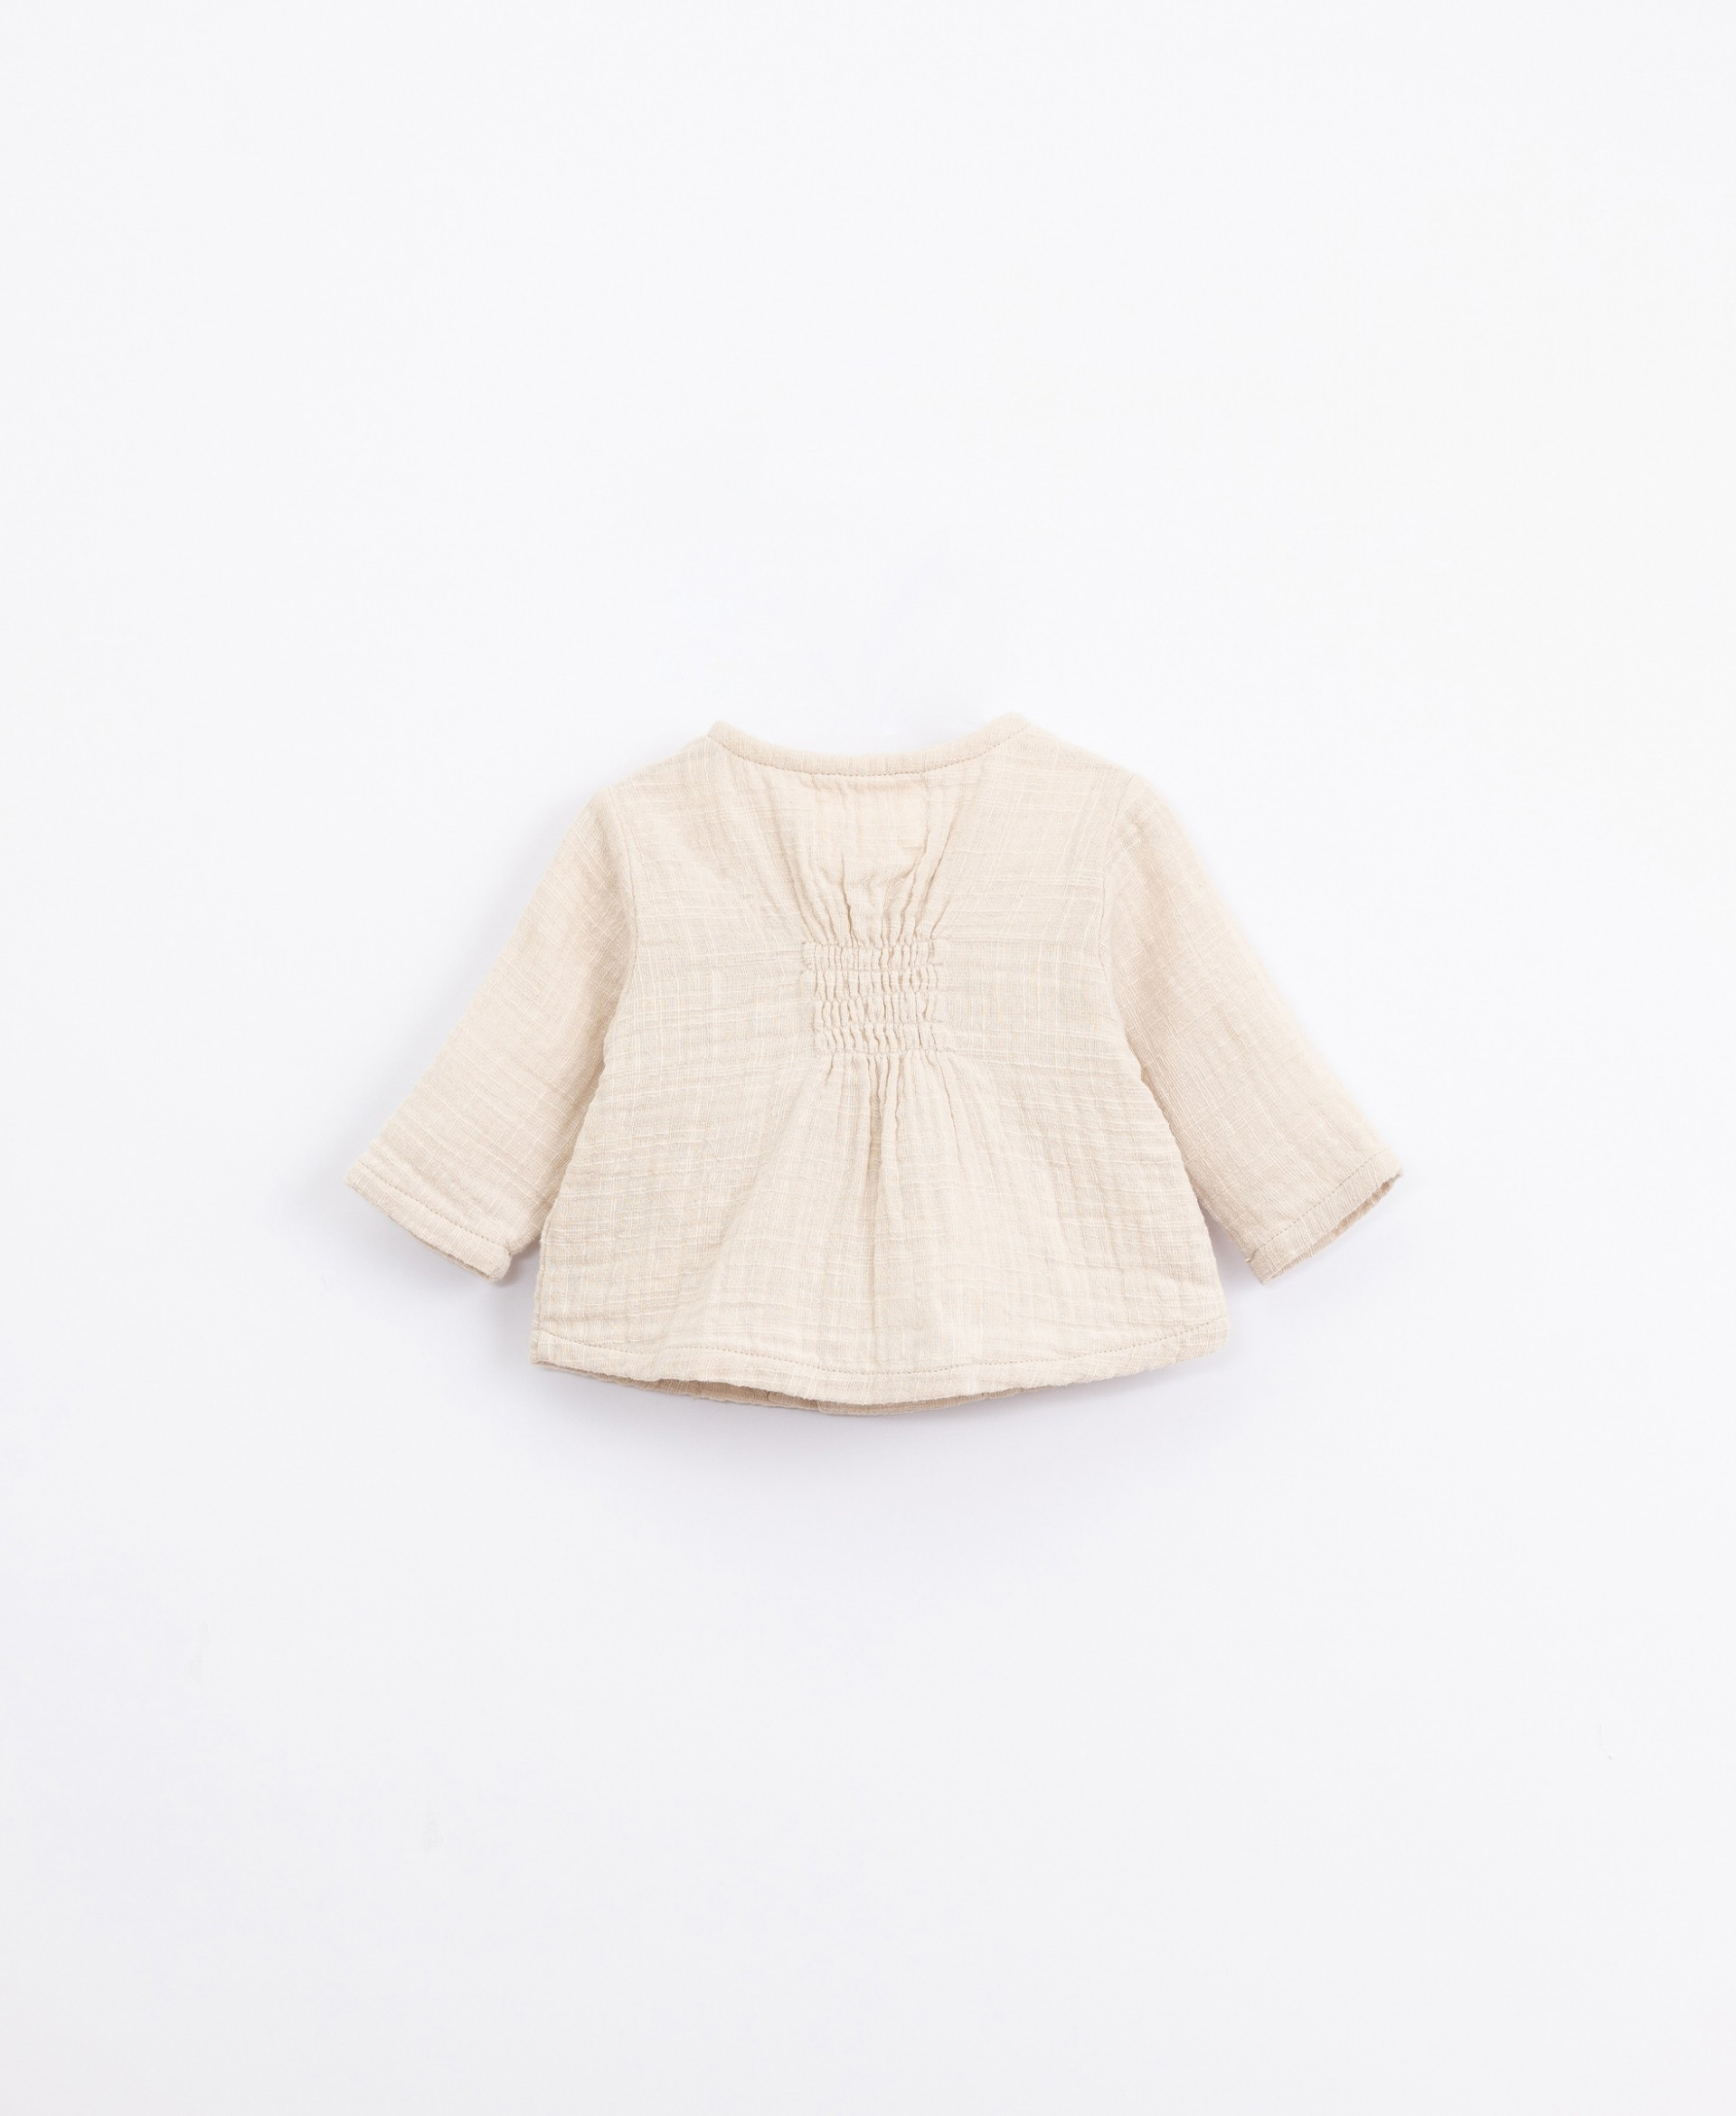 Cotton jersey with coconut buttons  Illustration